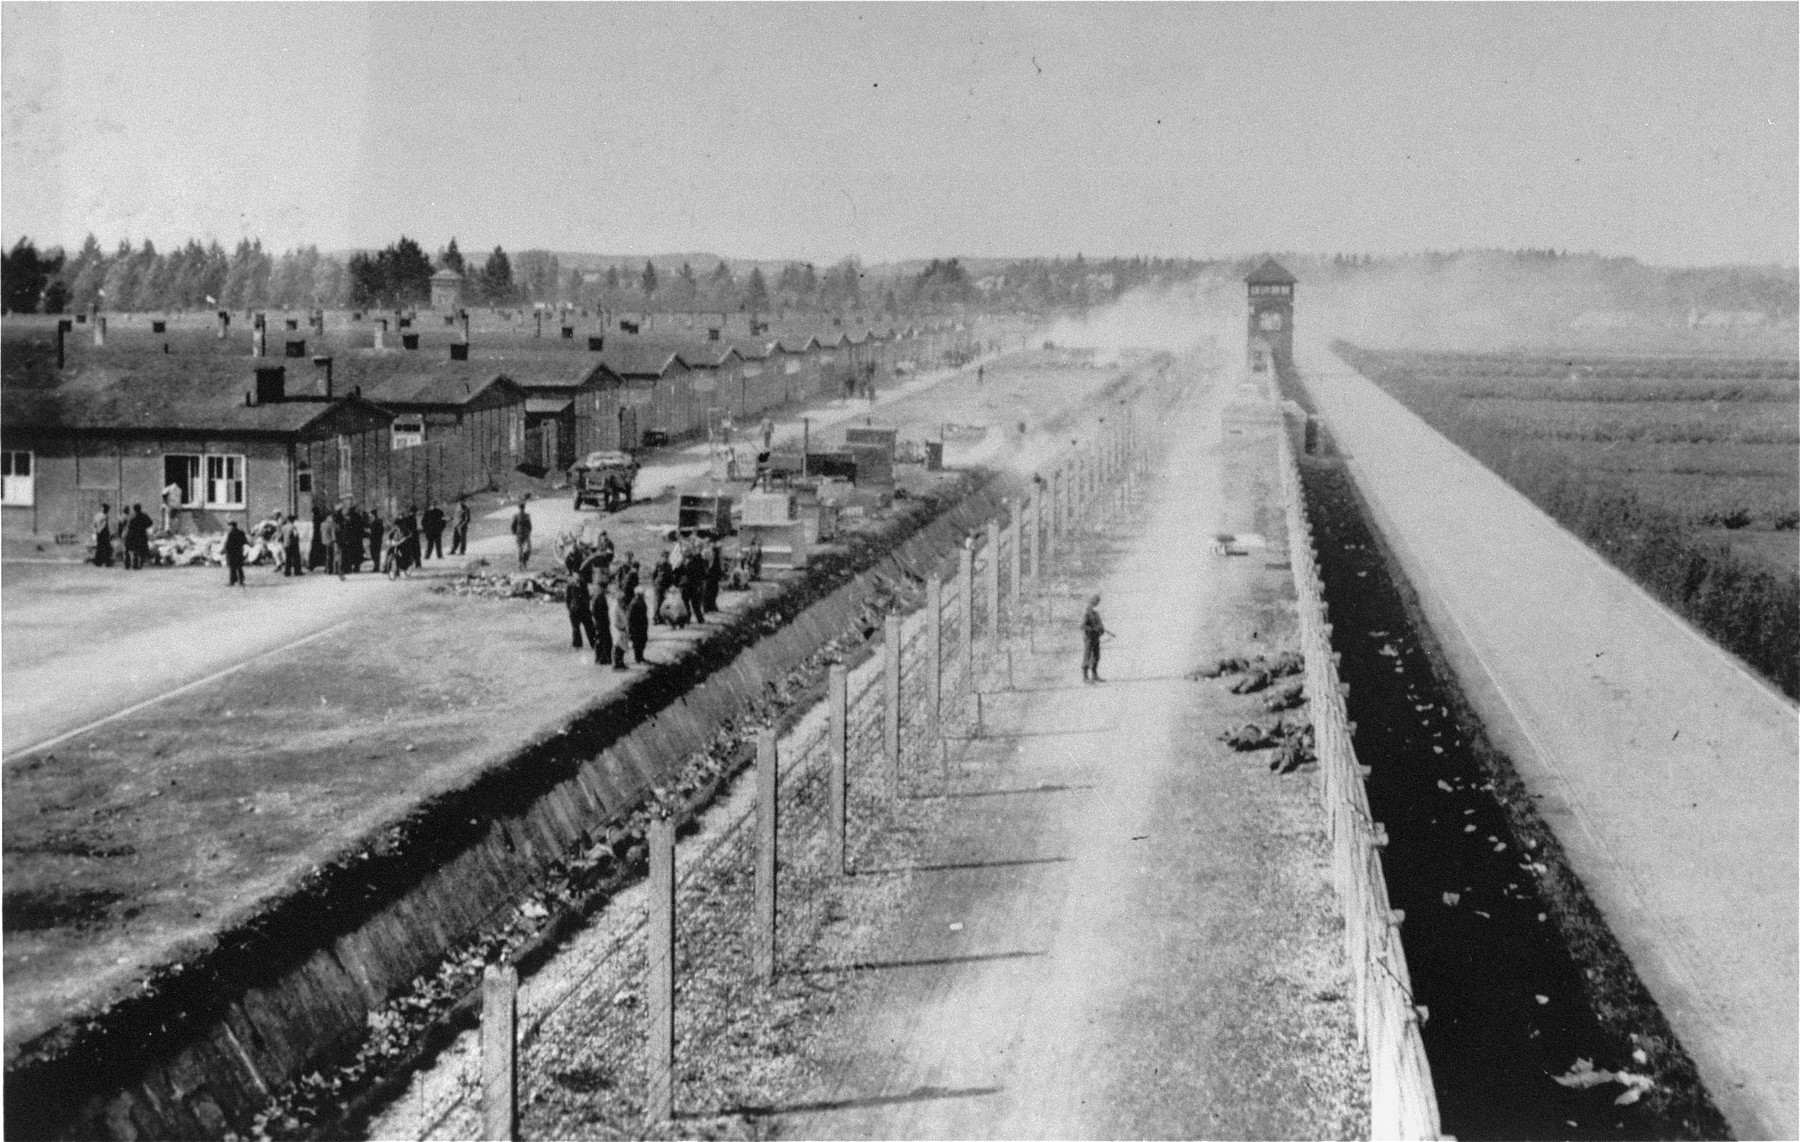 The Dachau concentration camp just after liberation.  An American solider is visible standing in front of the corpses of executed SS guards in the left-center of the photo.